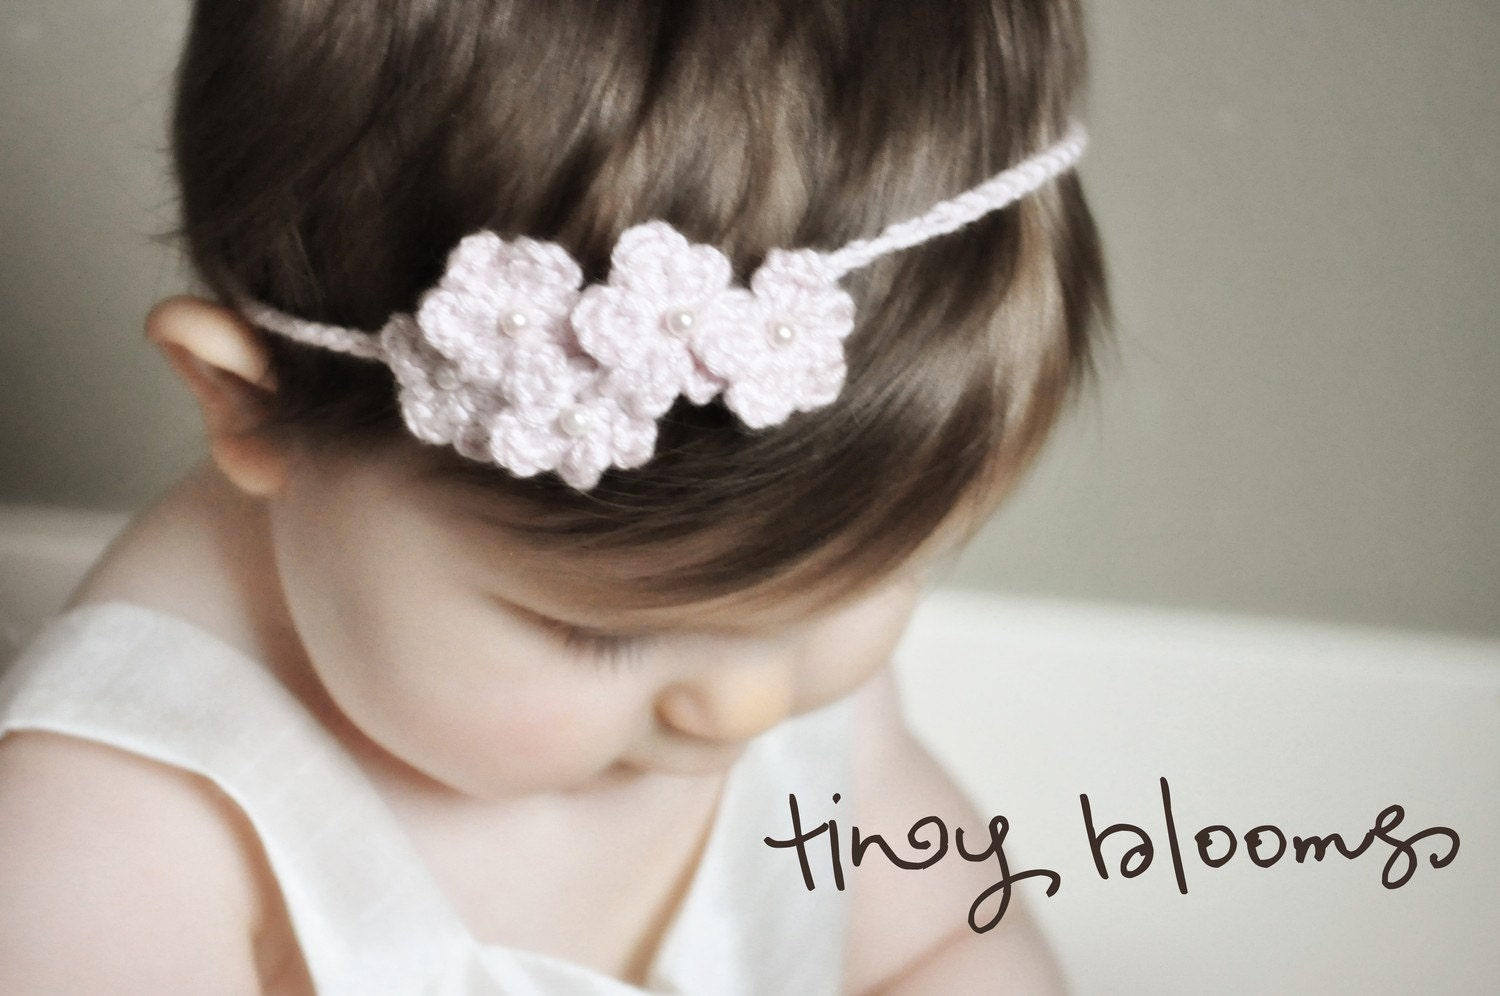 Crochet Headband Pattern Newborn : Spring Blooms Crochet Flower Headbands by LittleBirdieShoppe